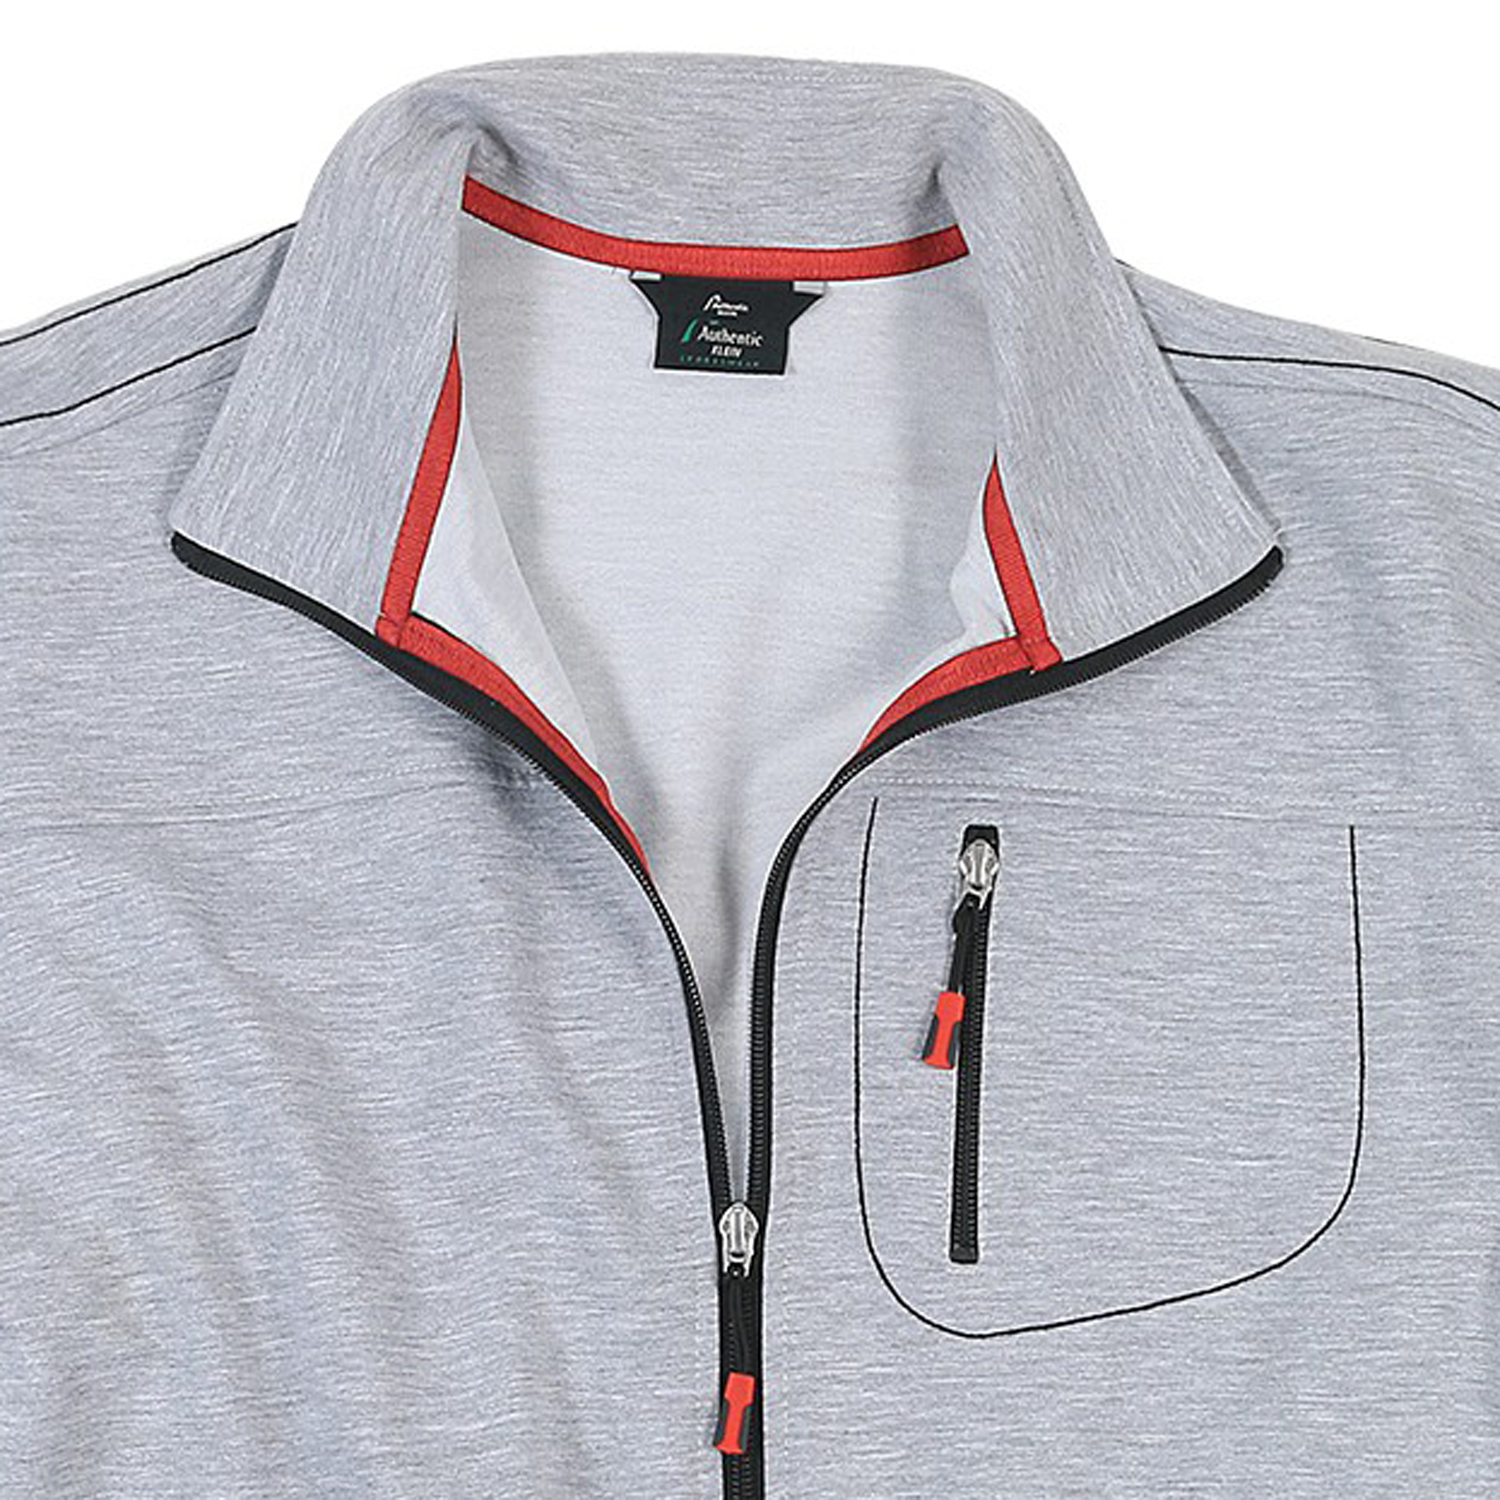 Detail Image to Stocky size sports and leisure jacket in grey, plus sizes by AUTHENTIC KLEIN